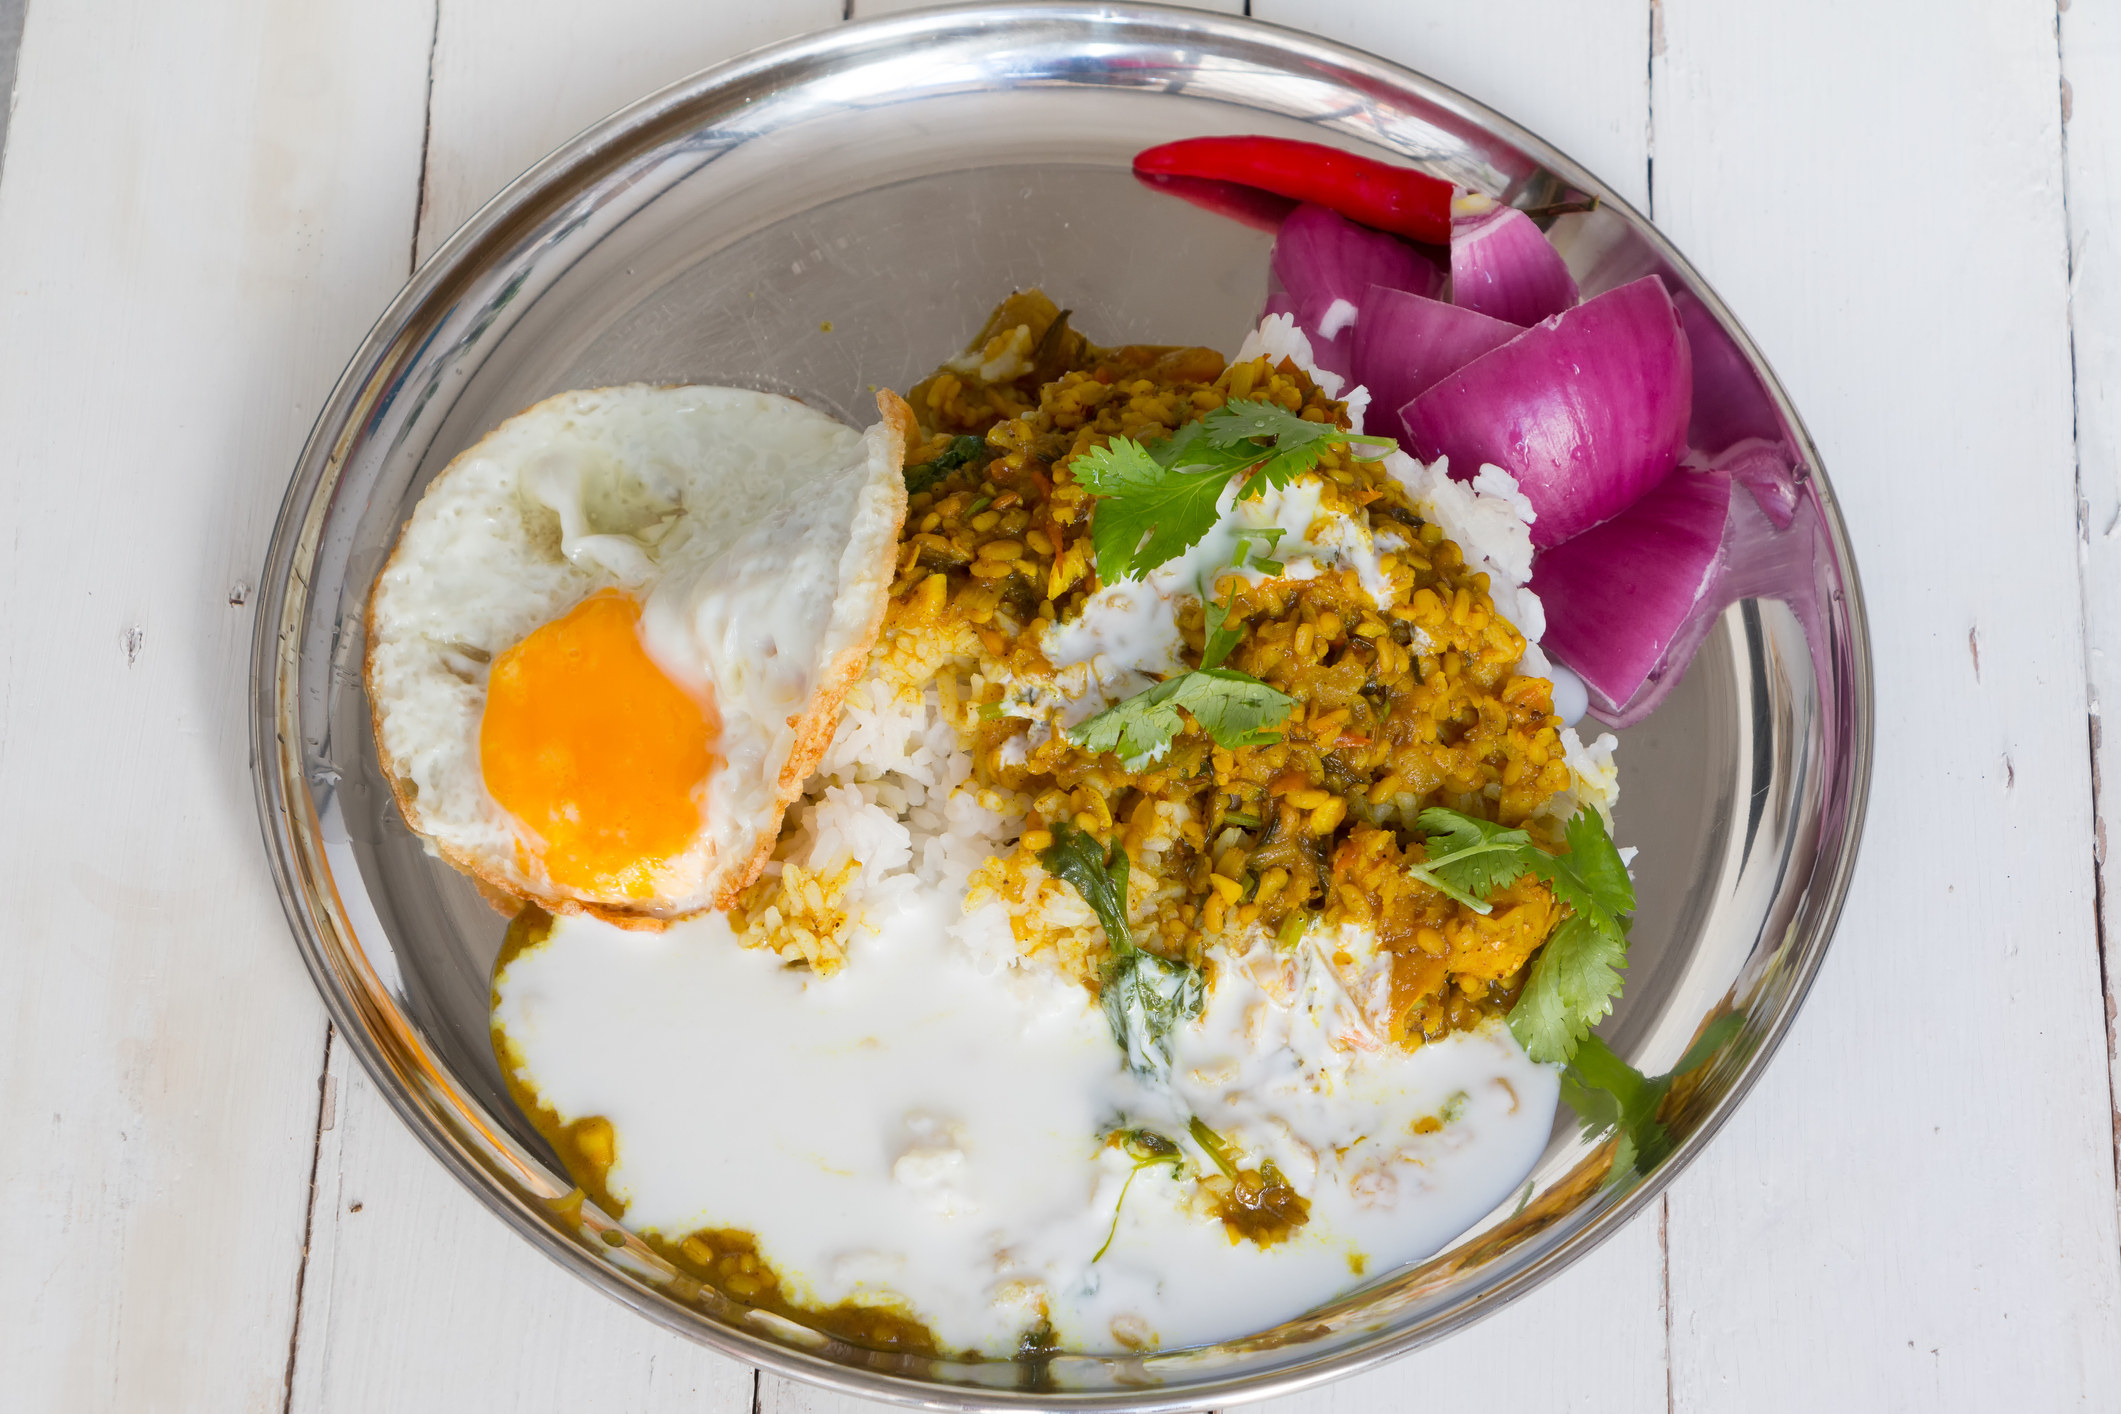 Nepalese curry over rice with an egg.